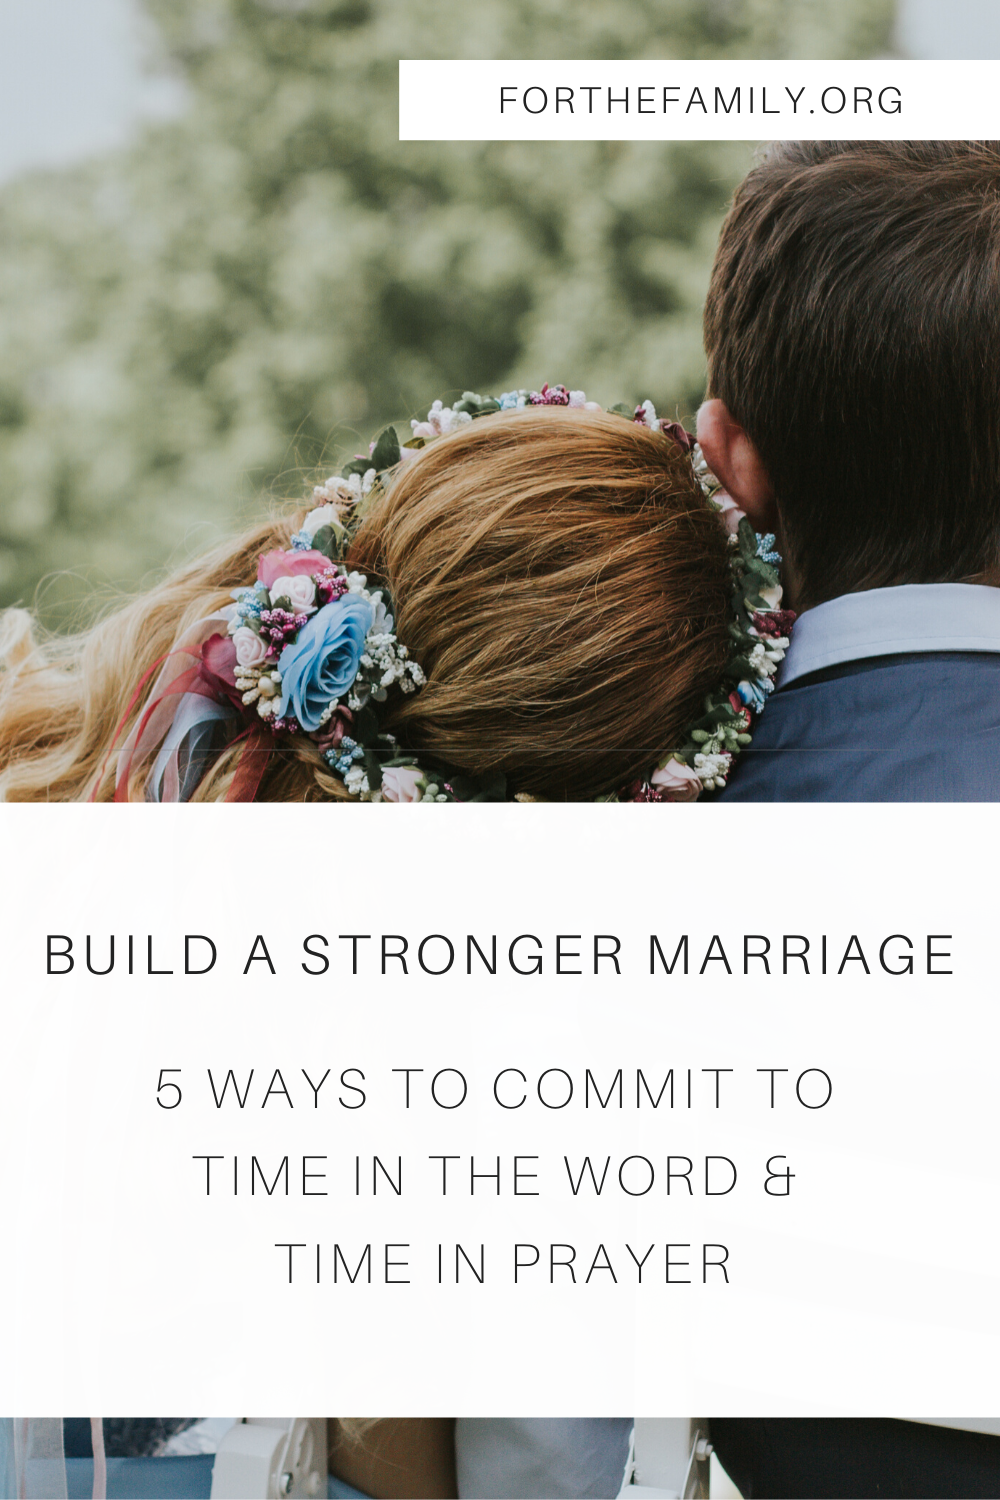 Healthy communication in marriage takes work – a lot of work! And, even with good intentions, our relationship with our spouse can easily take a backseat behind parenting, work, running a house, and life. Here are five SIMPLE ways to build a stronger marriage...starting today!